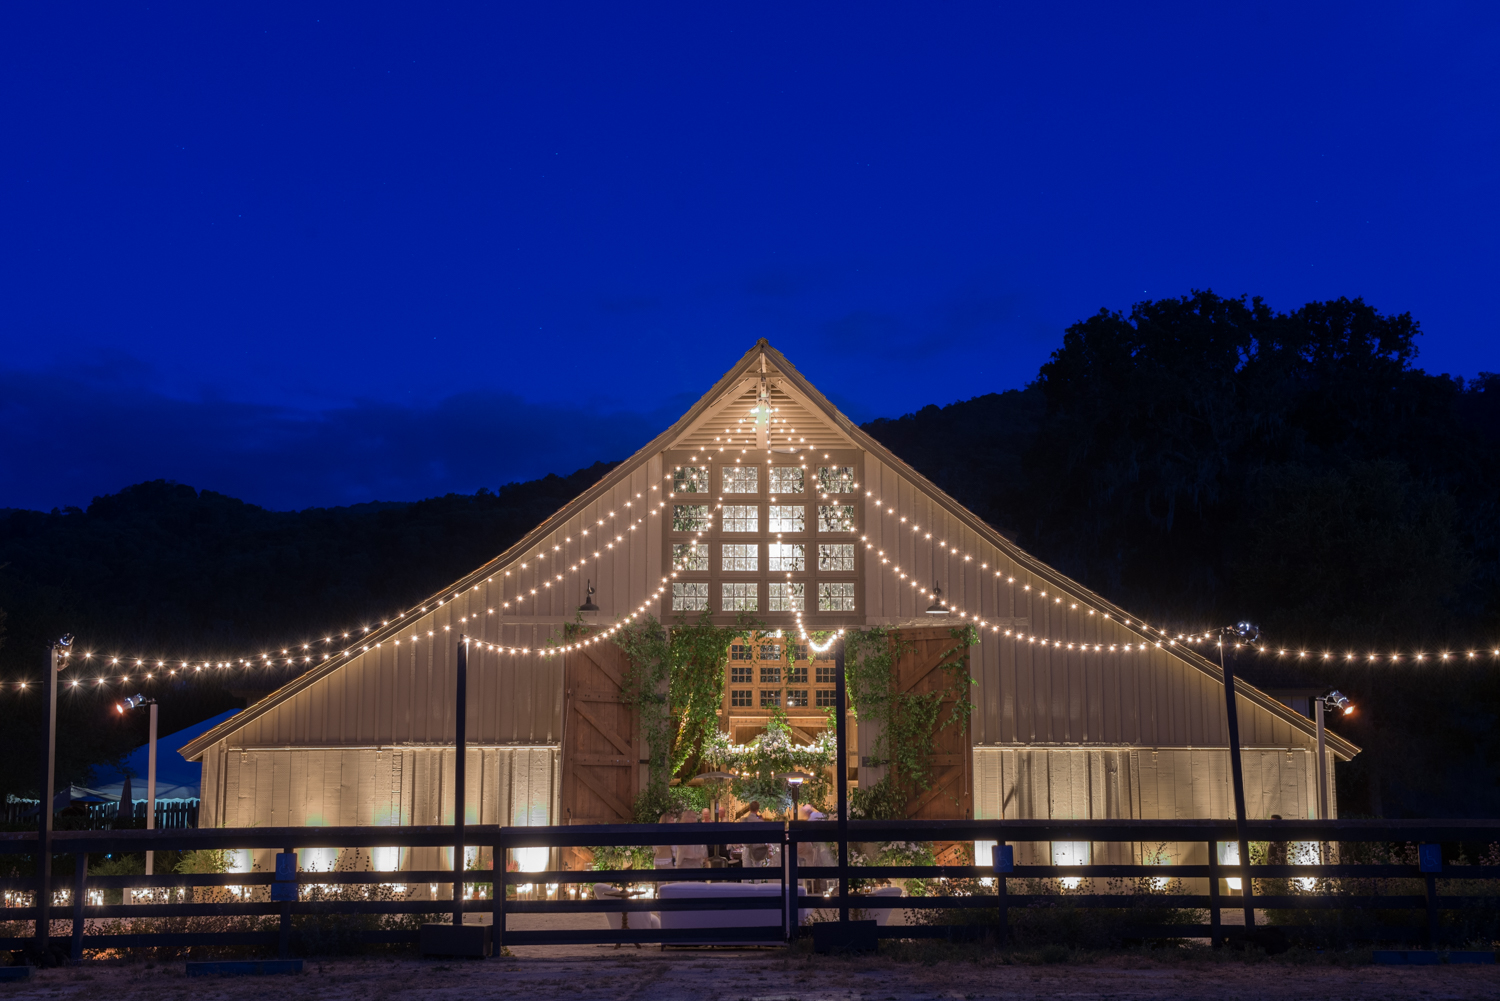 String lights decorate the wedding reception barn at Santa Lucia Preserve; Sylvie Gil Photography